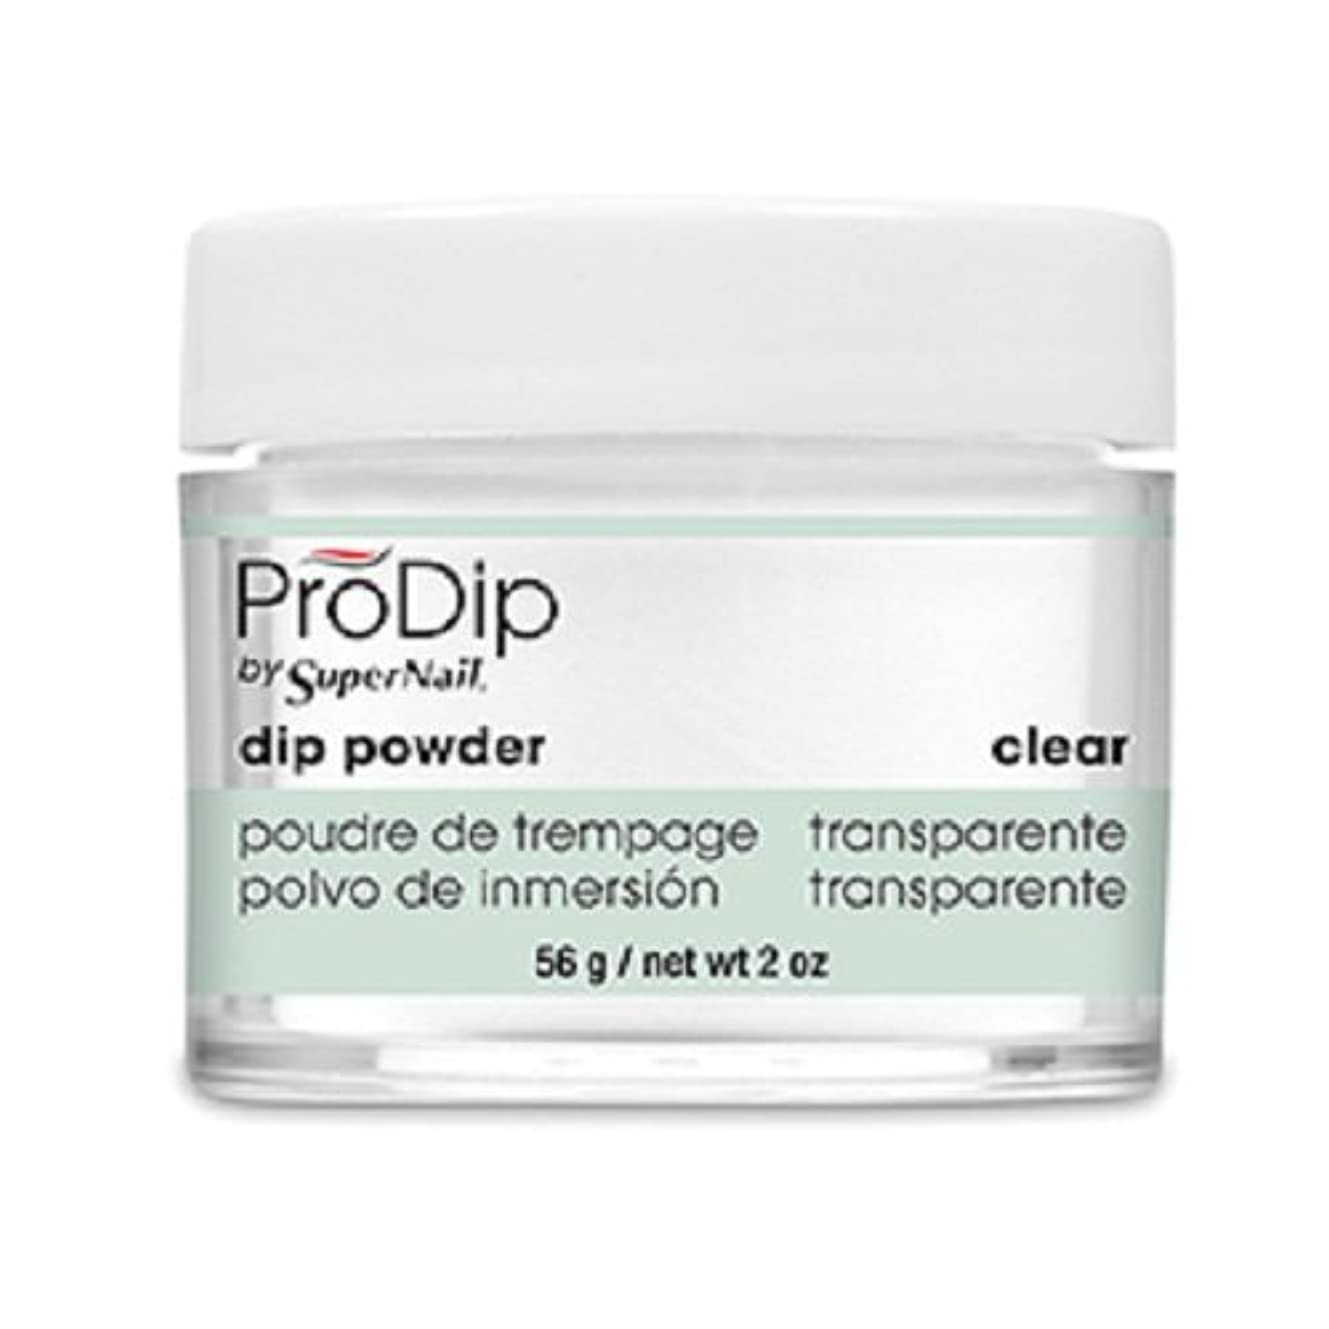 潜水艦波ゆりかごSuperNail - ProDip - Dip Powder - Clear - 56 g/2 oz